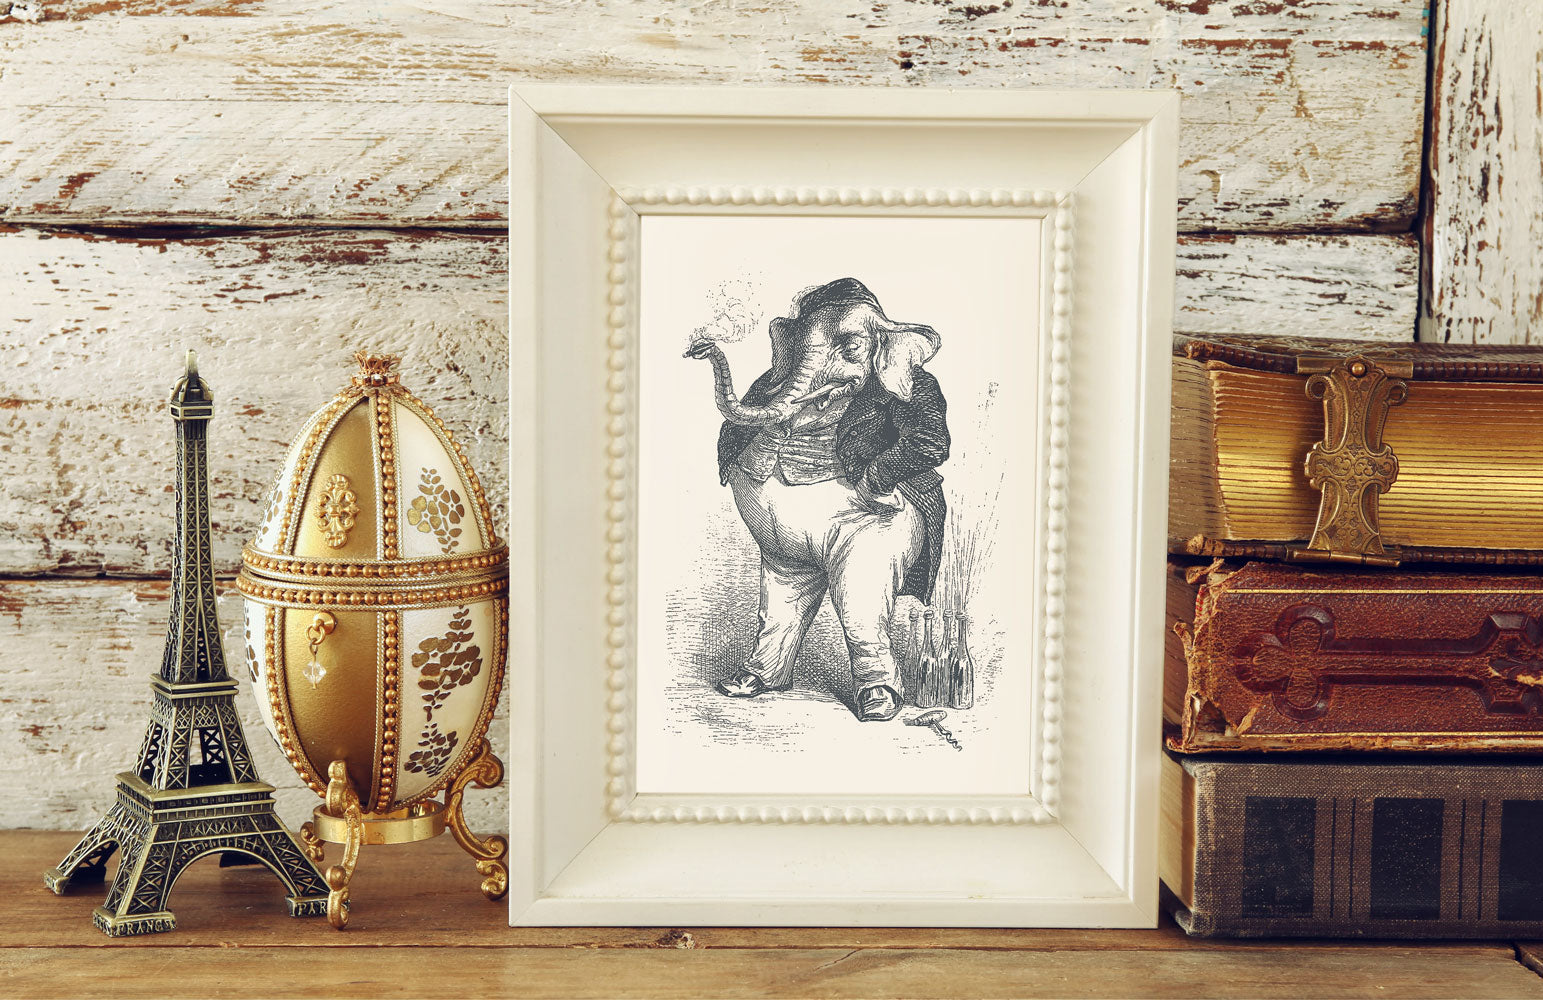 The Smoking Elephant Art Print - Vintage Illustrations Wall Art Collection